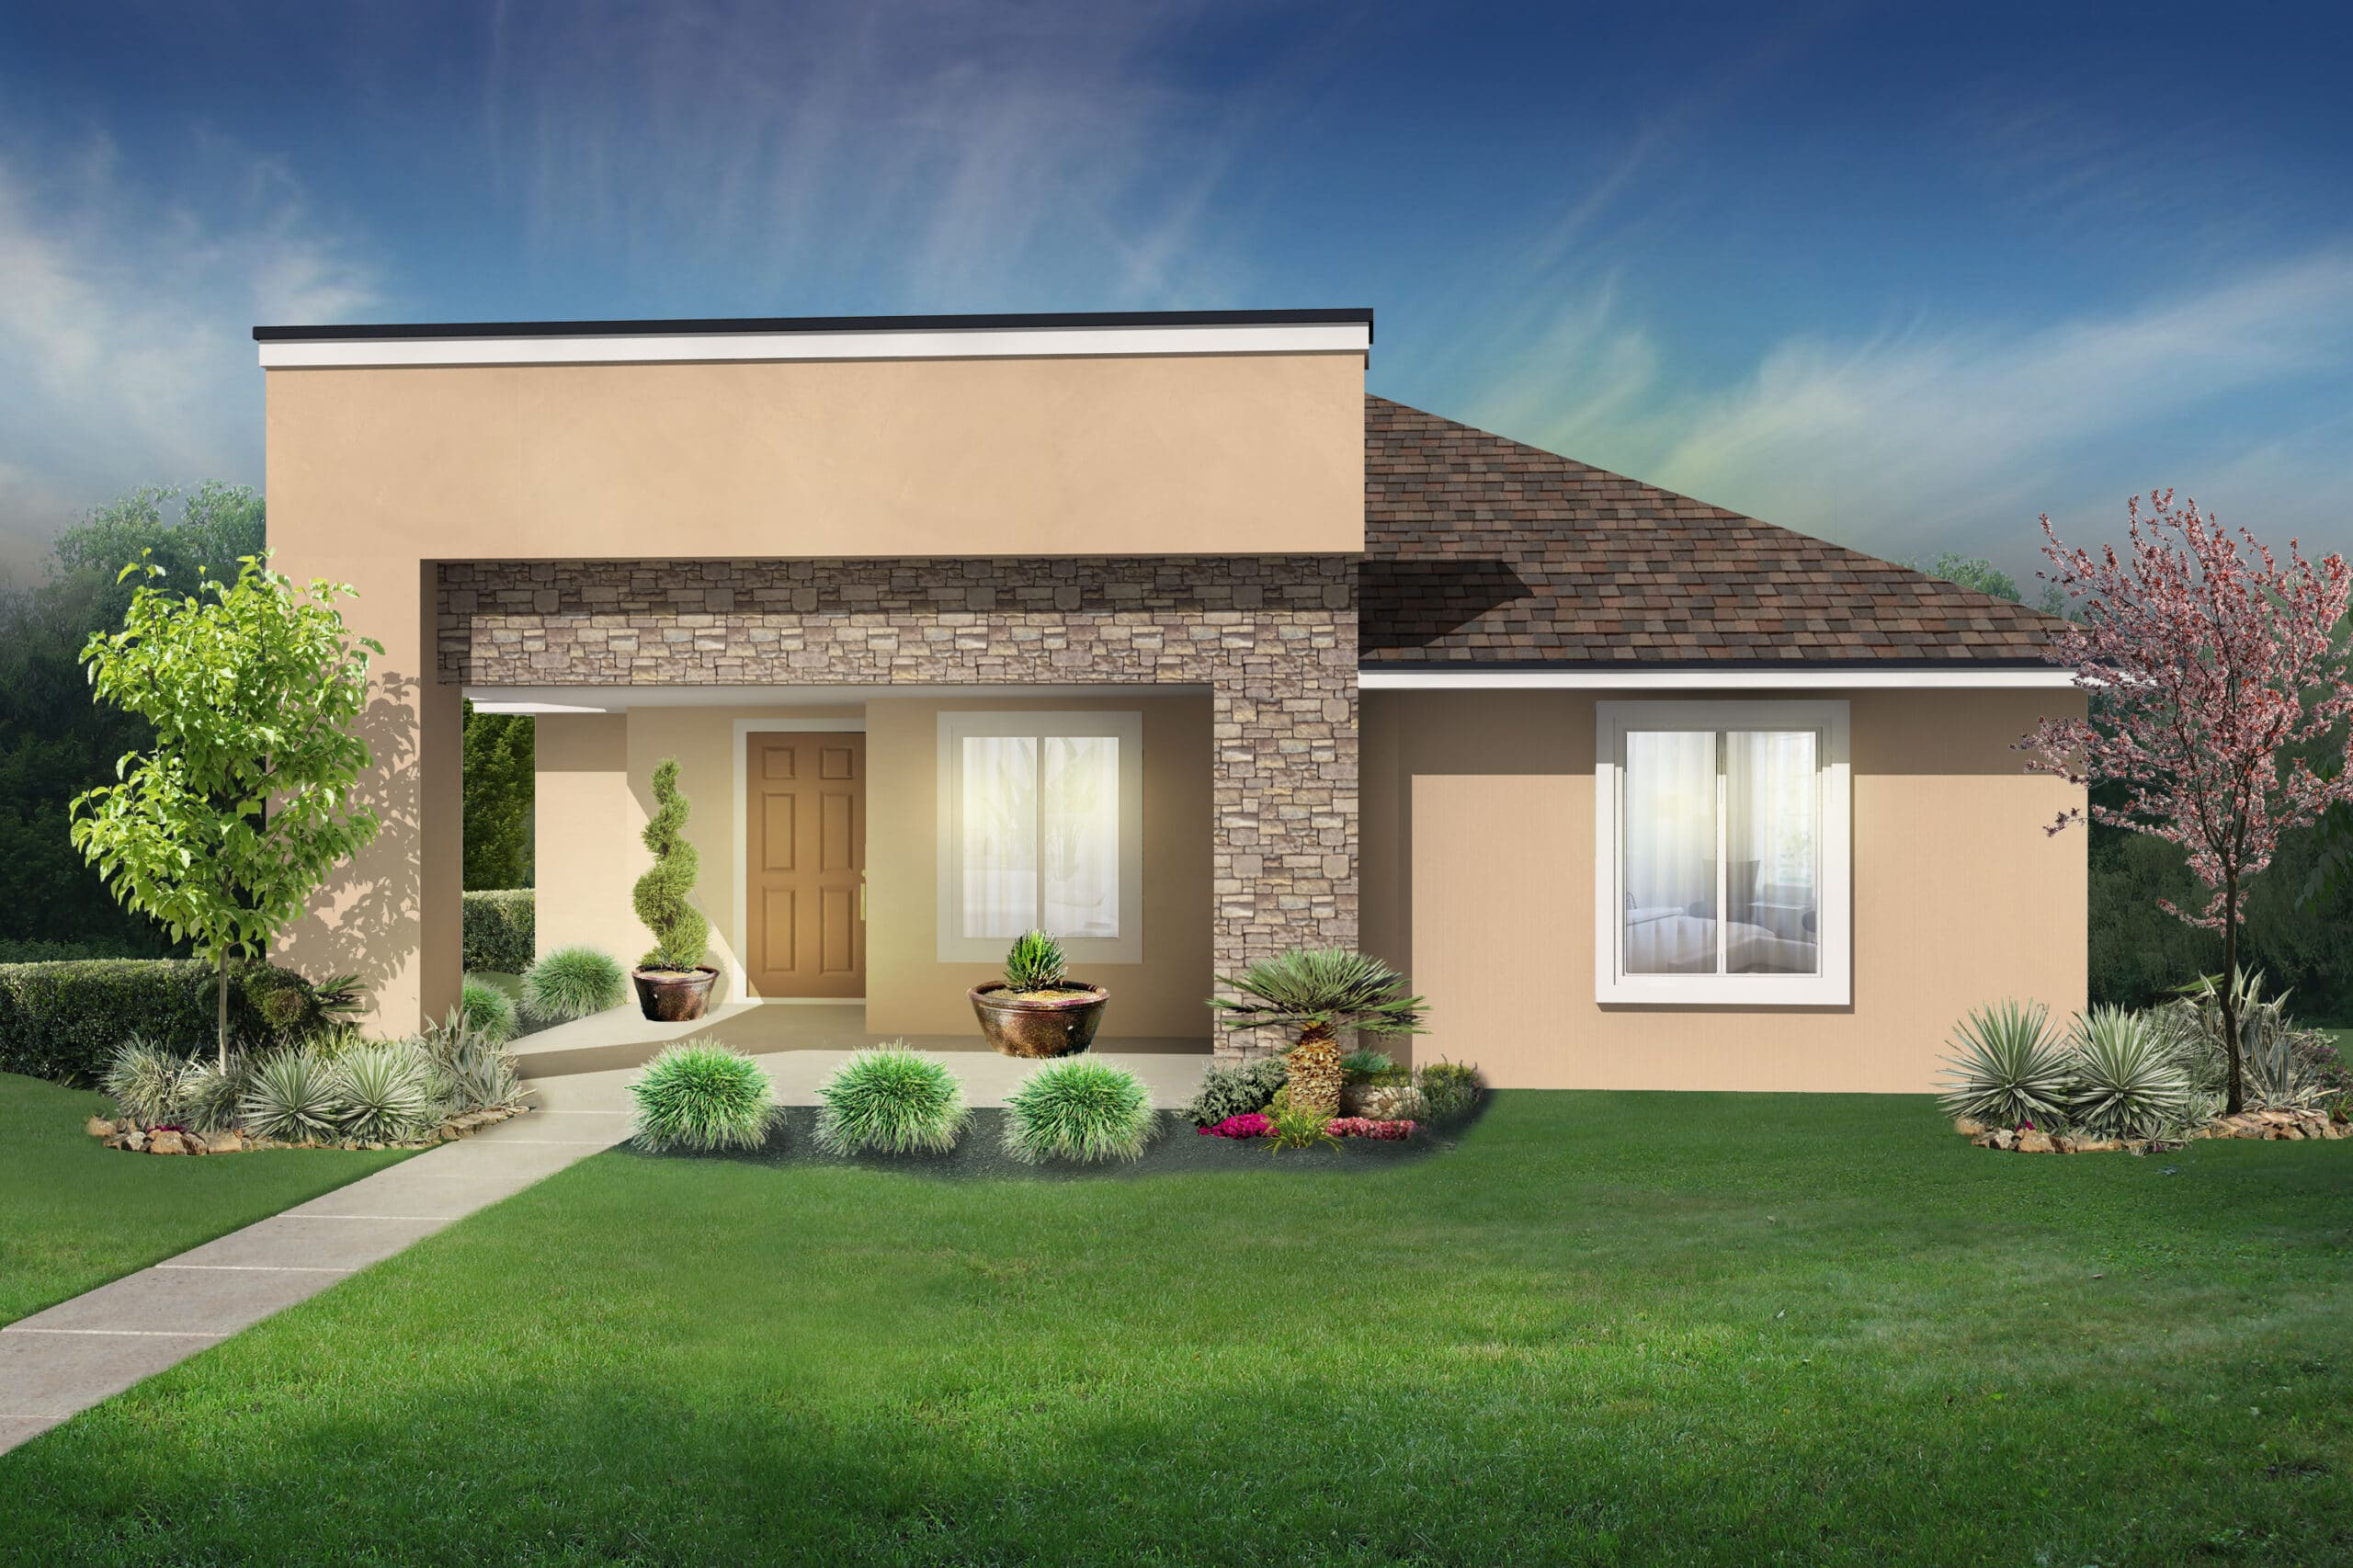 Home Model Layout